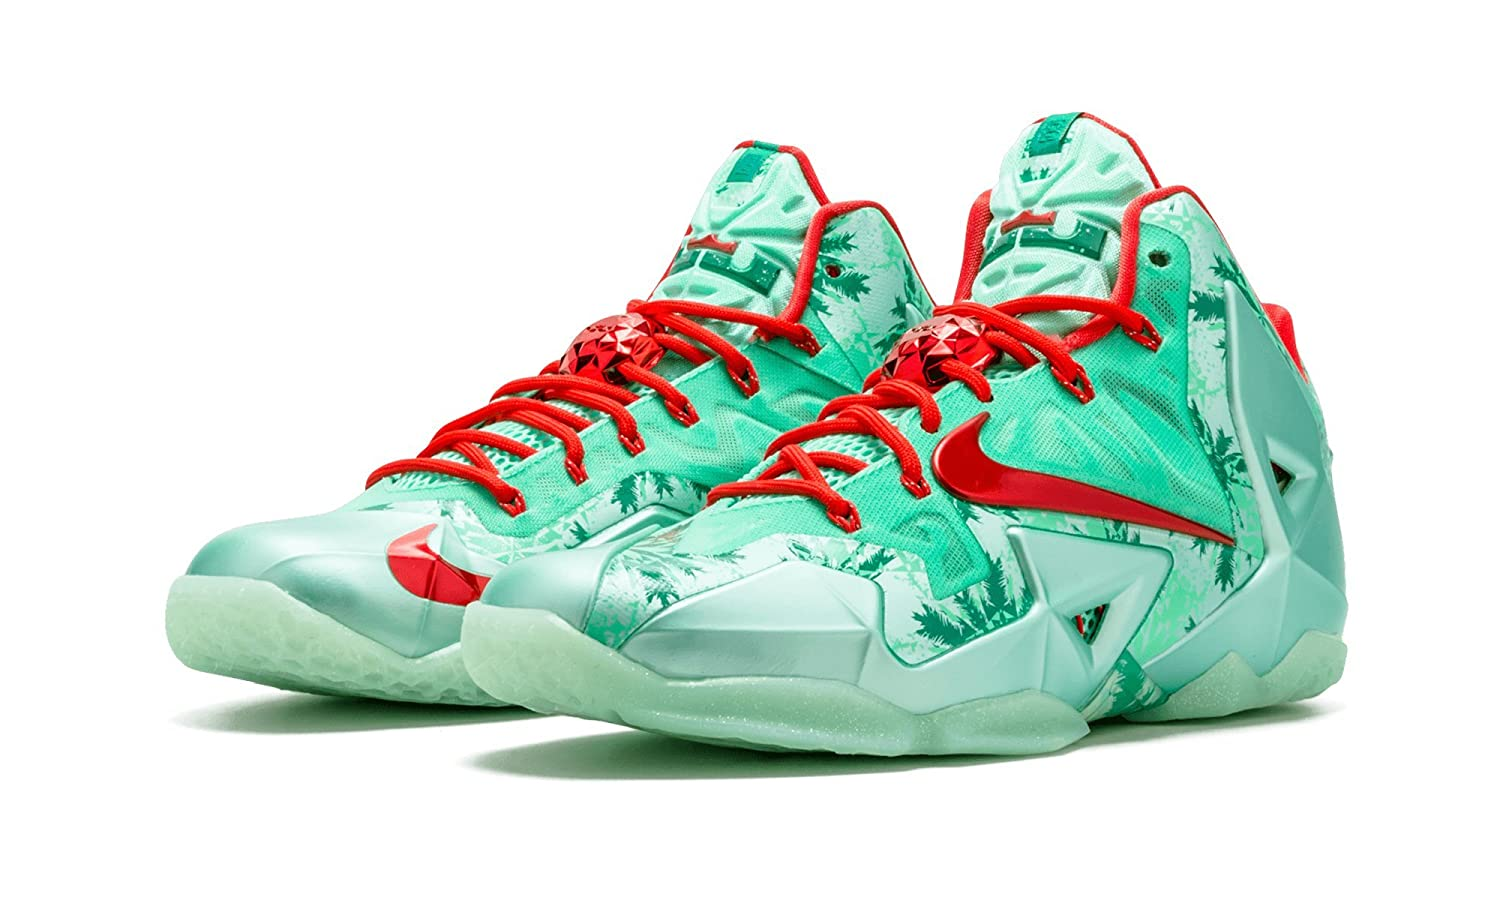 f47a563366f70 Nike Lebron 11 Christmas - 616175-301 - Size 9 -  Amazon.co.uk  Shoes   Bags